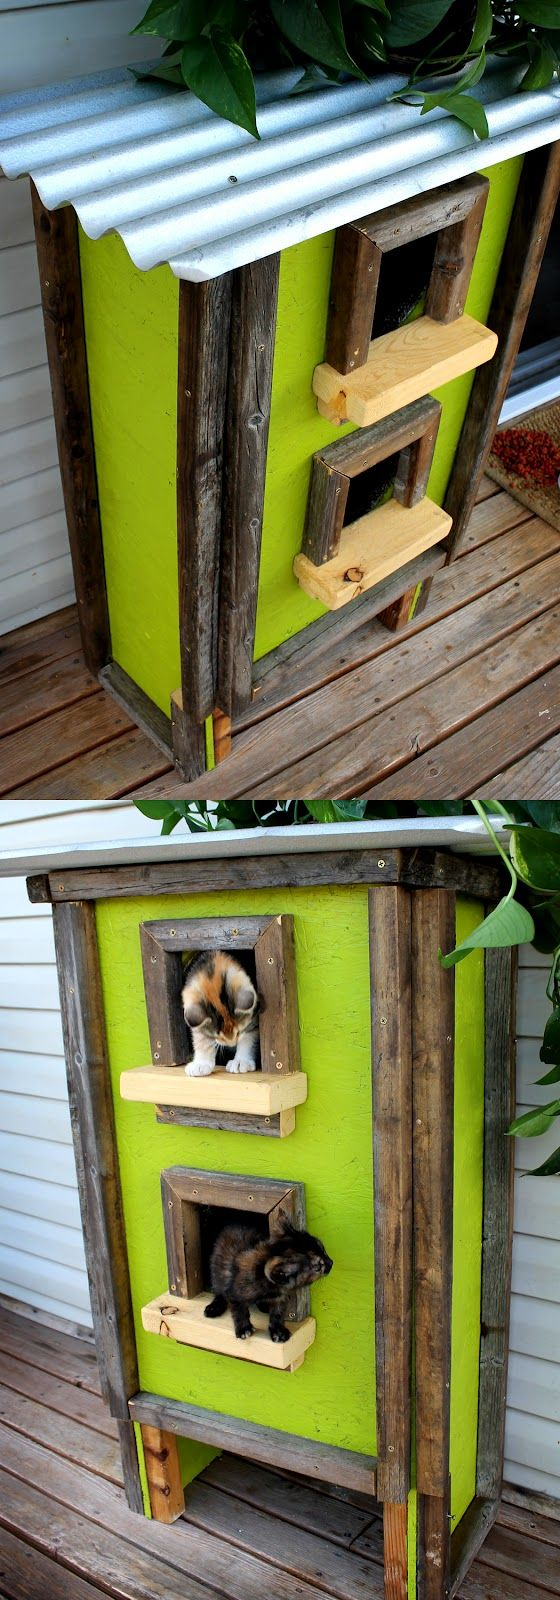 Cat House by Meg Torman Designing  Macye get Jared to build your cats on of these!